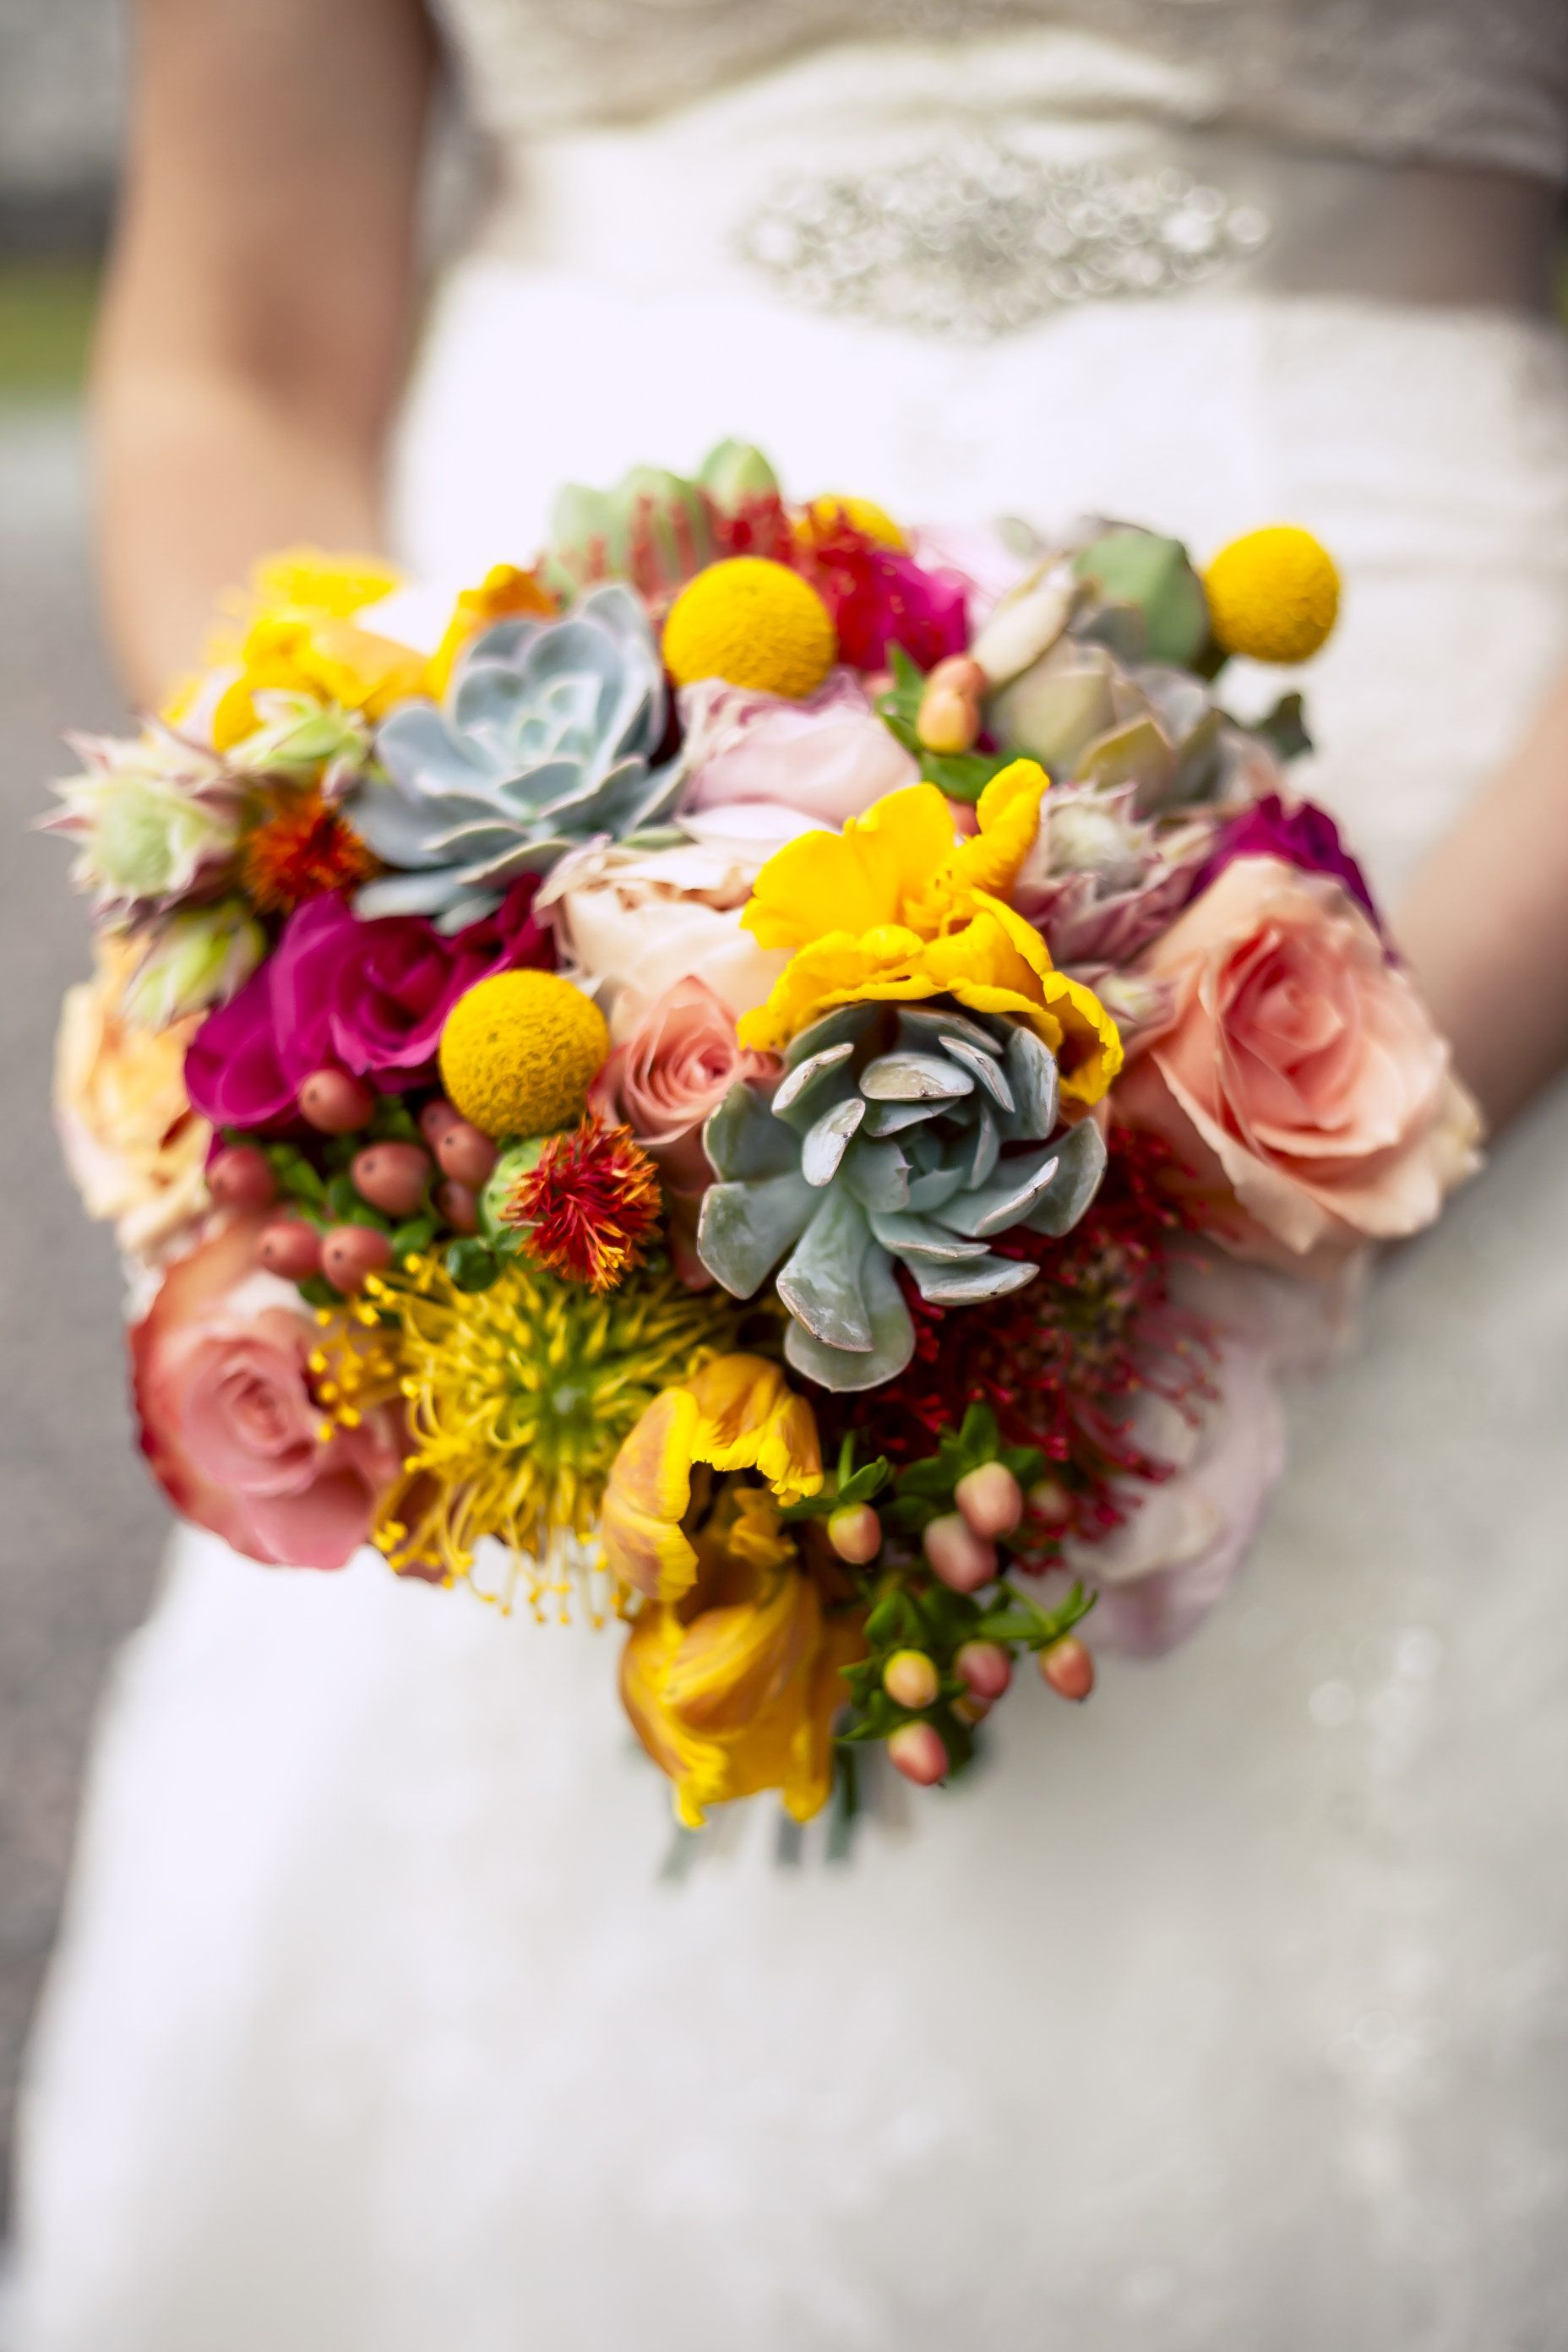 Absolutely #stunning #flowers for the #bride by @Ashley Urban Poppy! We love this #bright, #bold + #beautiful #blend of #florals. From #succulents to #roses to #waxberry + #more! ::Sarah + Zach's bright + cheery wedding at the Savannah Railroad Roundhouse and Museum in Georgia:: #floraldesign #floralarrangement #bridalbouquet #gorgeous #weddingflowers #savannahwedding #weddingphotography #pink #yellow #blue #bright #colorful